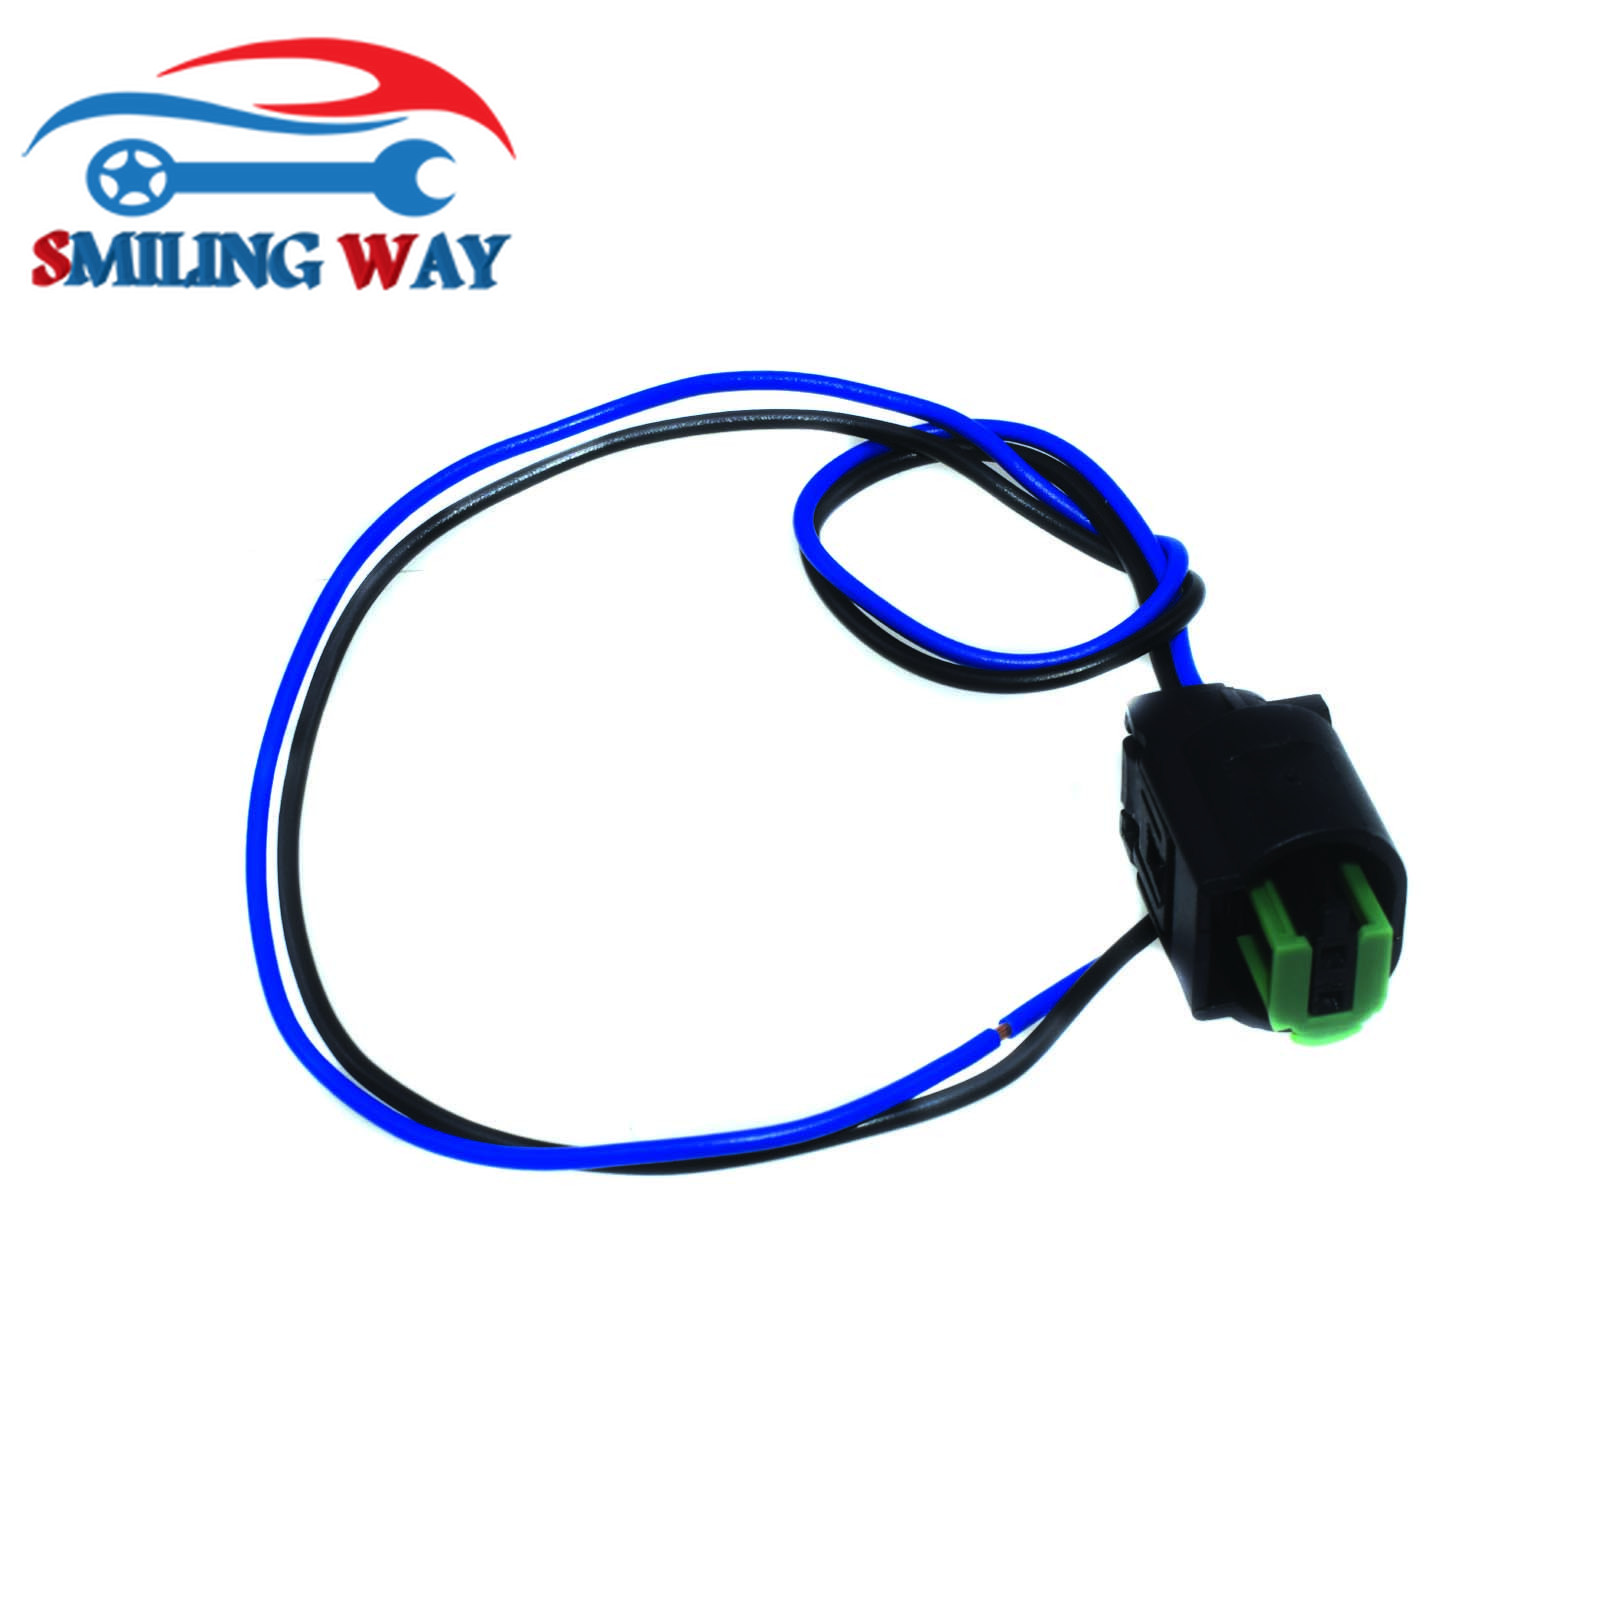 hight resolution of aliexpress com buy smiling way temperature airbag sensor connector plug pigtail harness wire cable for bmw e36 e38 e46 e39 e60 e61 e66 m3 m5 z4 from